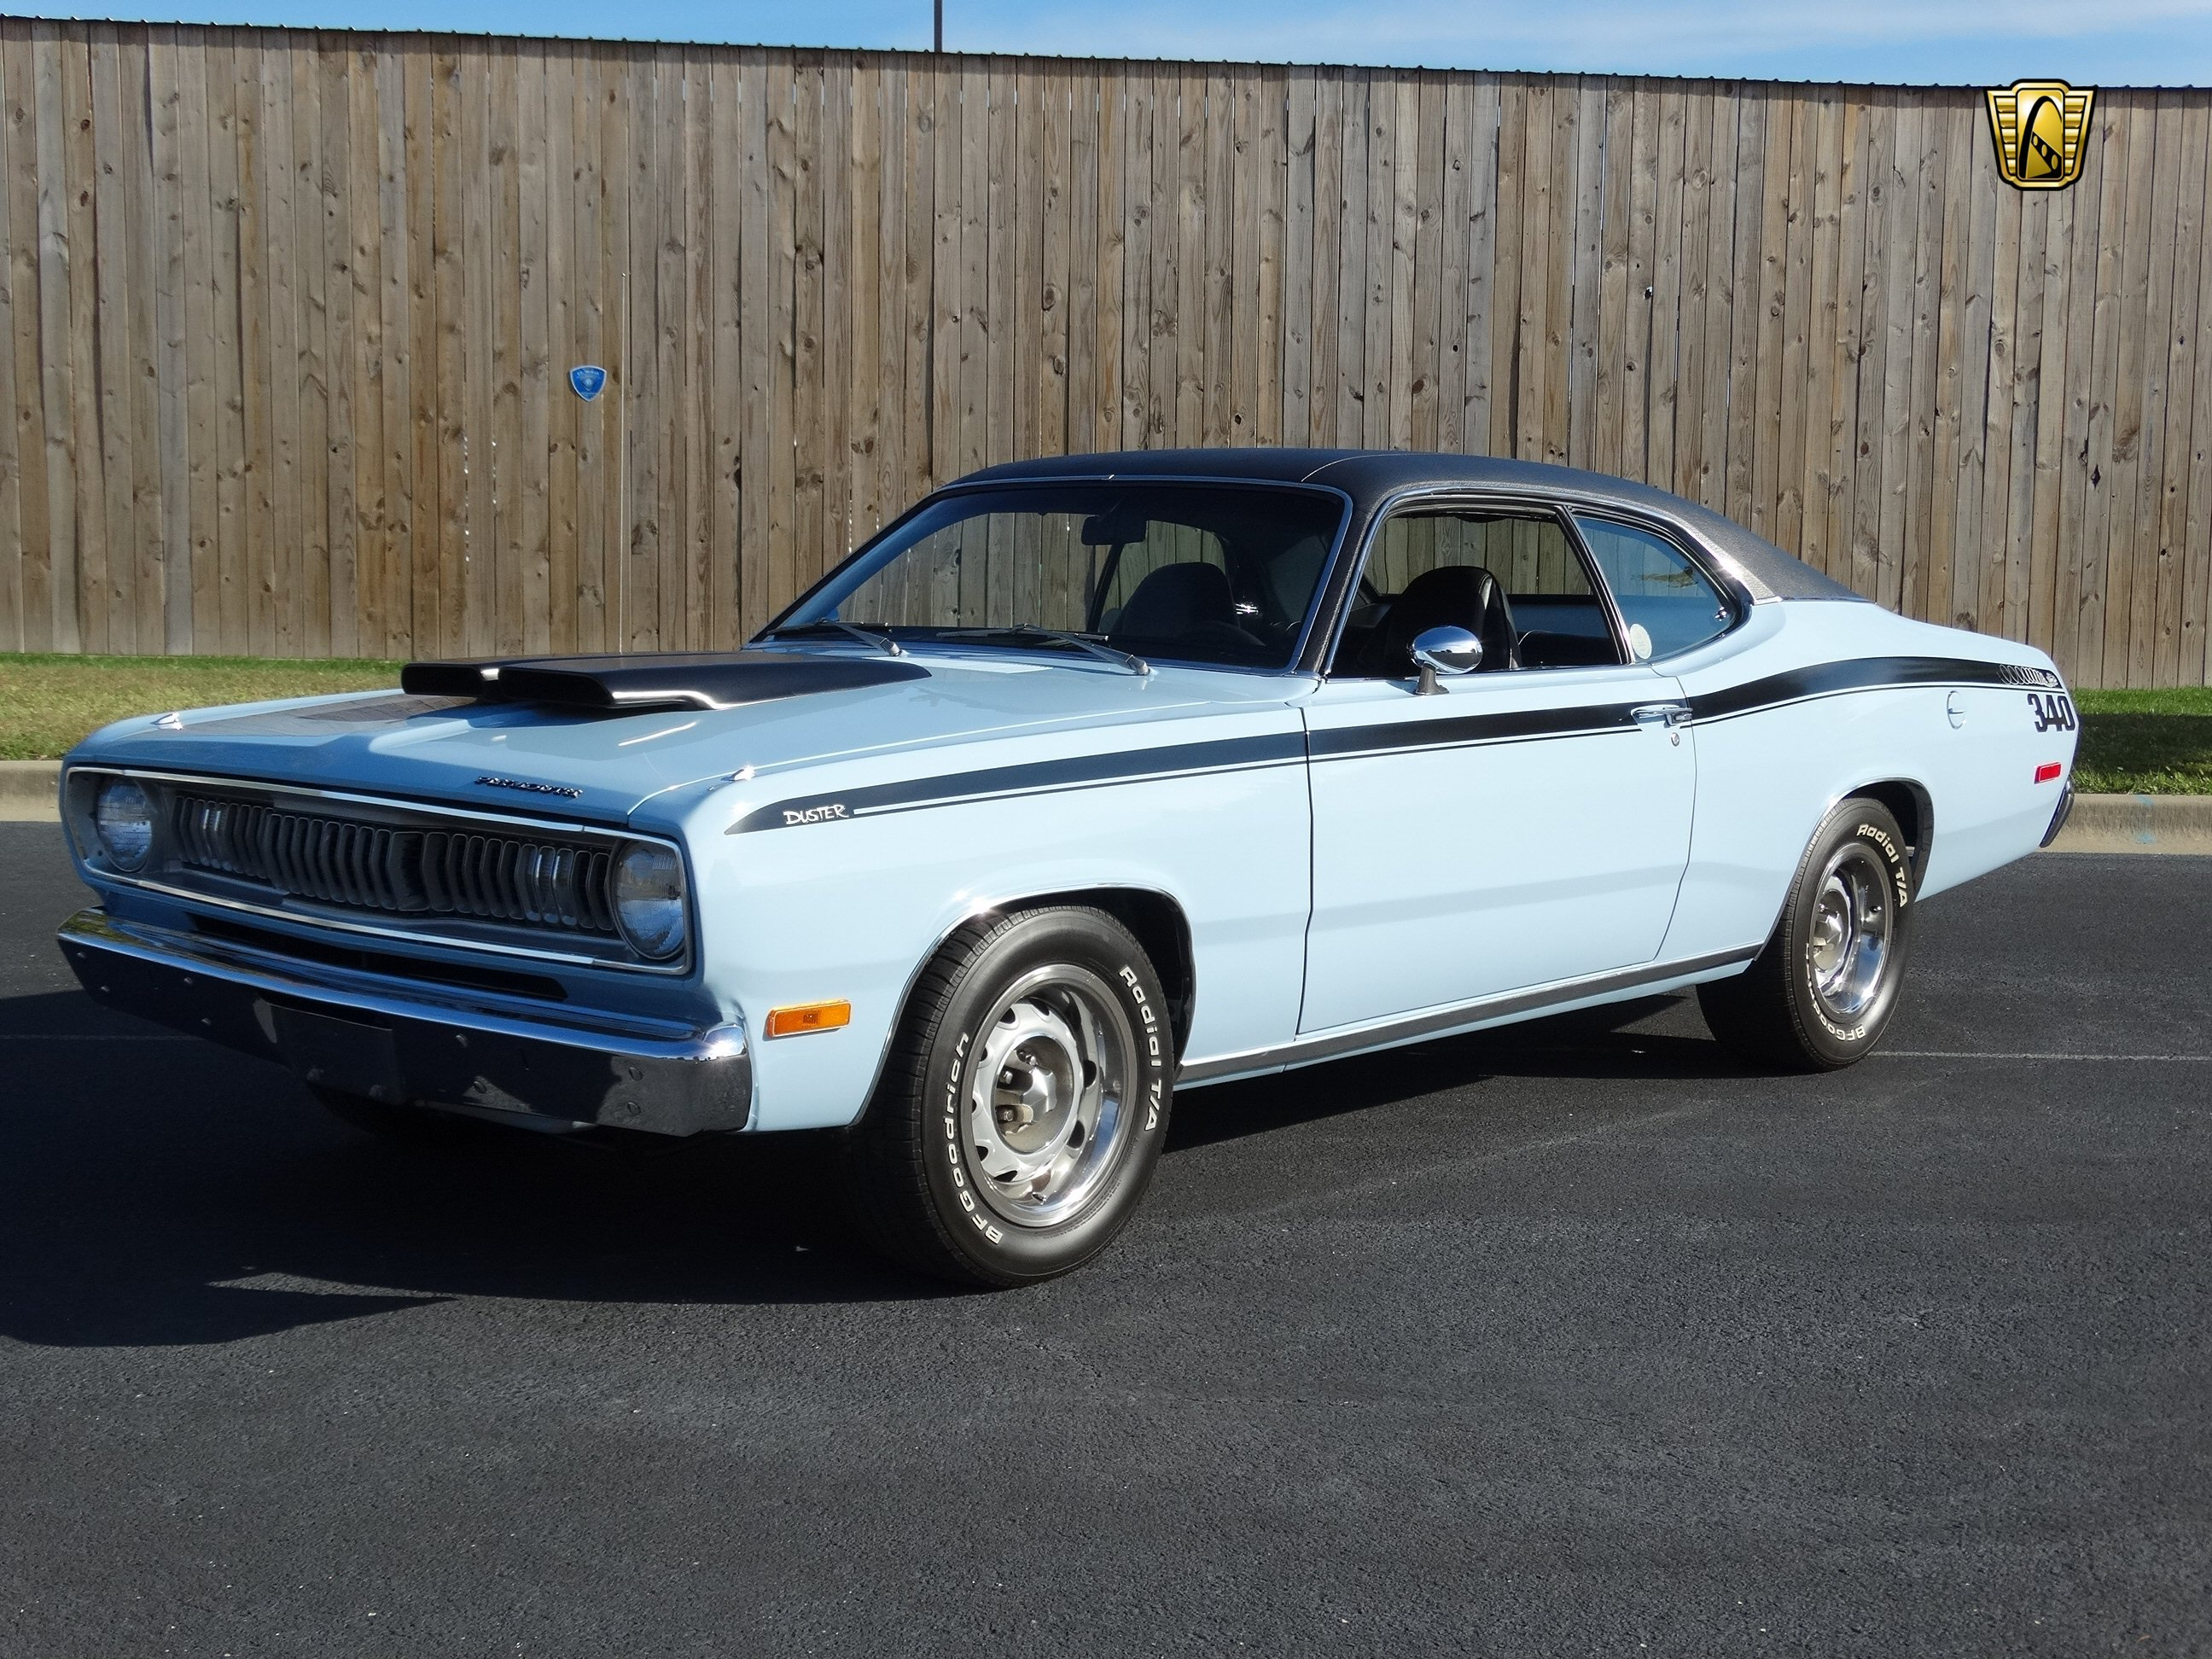 1972 plymouth duster 340 cars coupe usa wallpaper 2592x1944 819670 wallpaperup. Black Bedroom Furniture Sets. Home Design Ideas